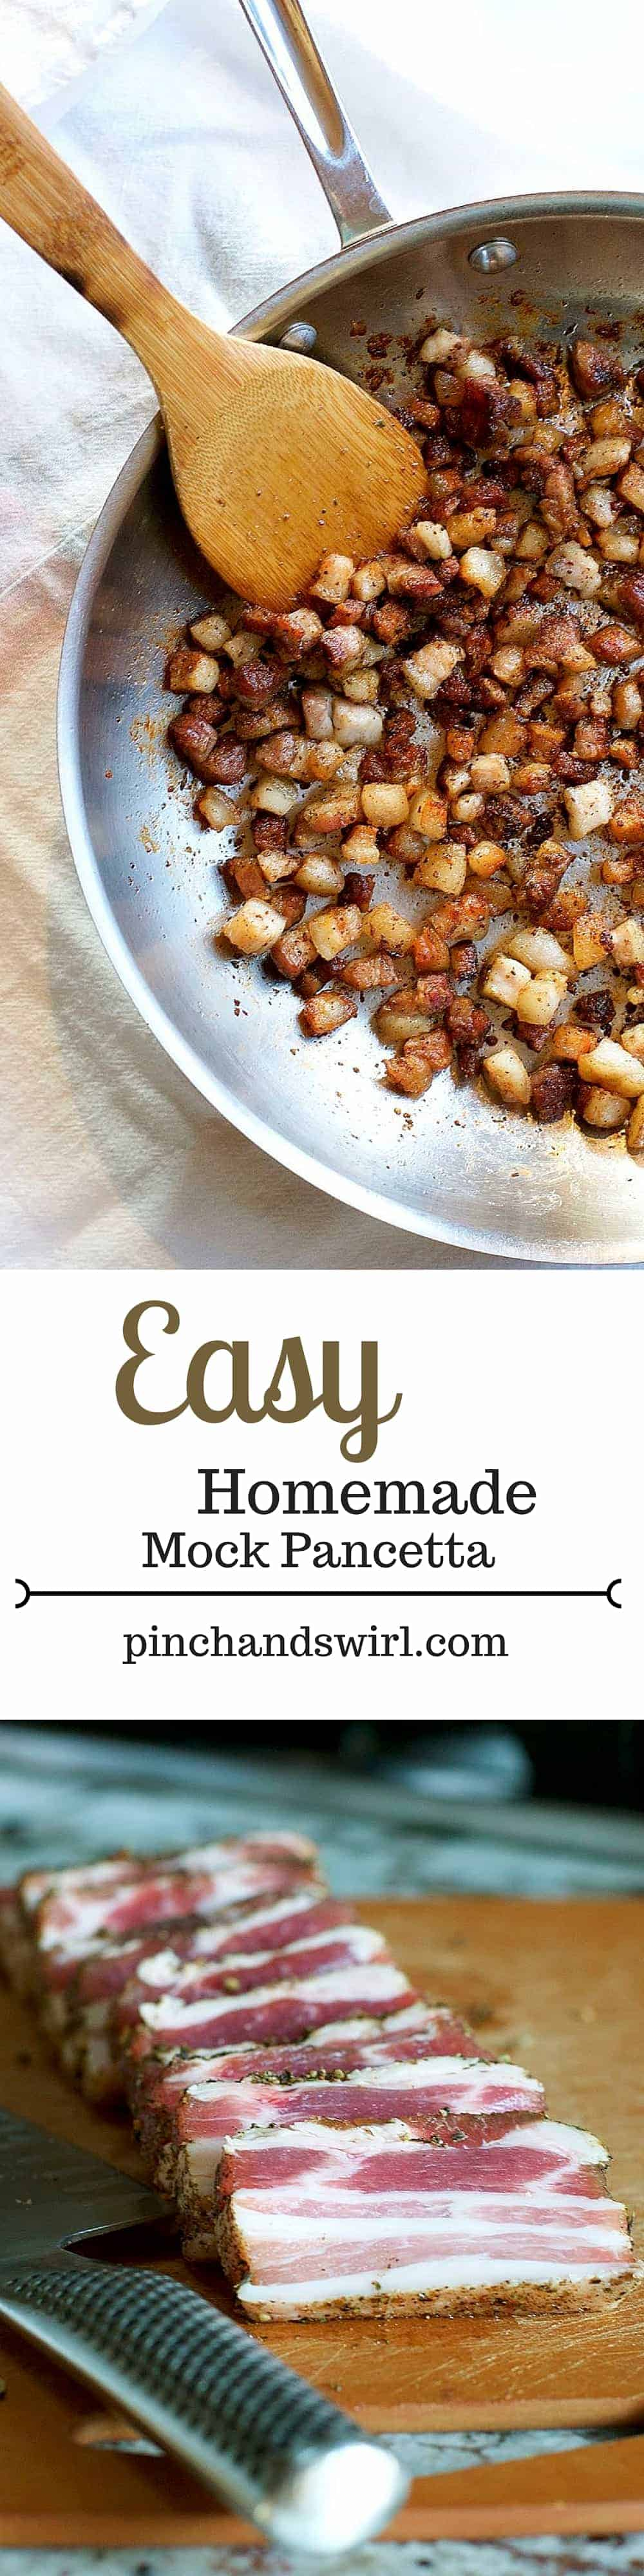 Easy Homemade Mock Pancetta! The secret is the dry brine... #recipe #bacon #easyrecipe